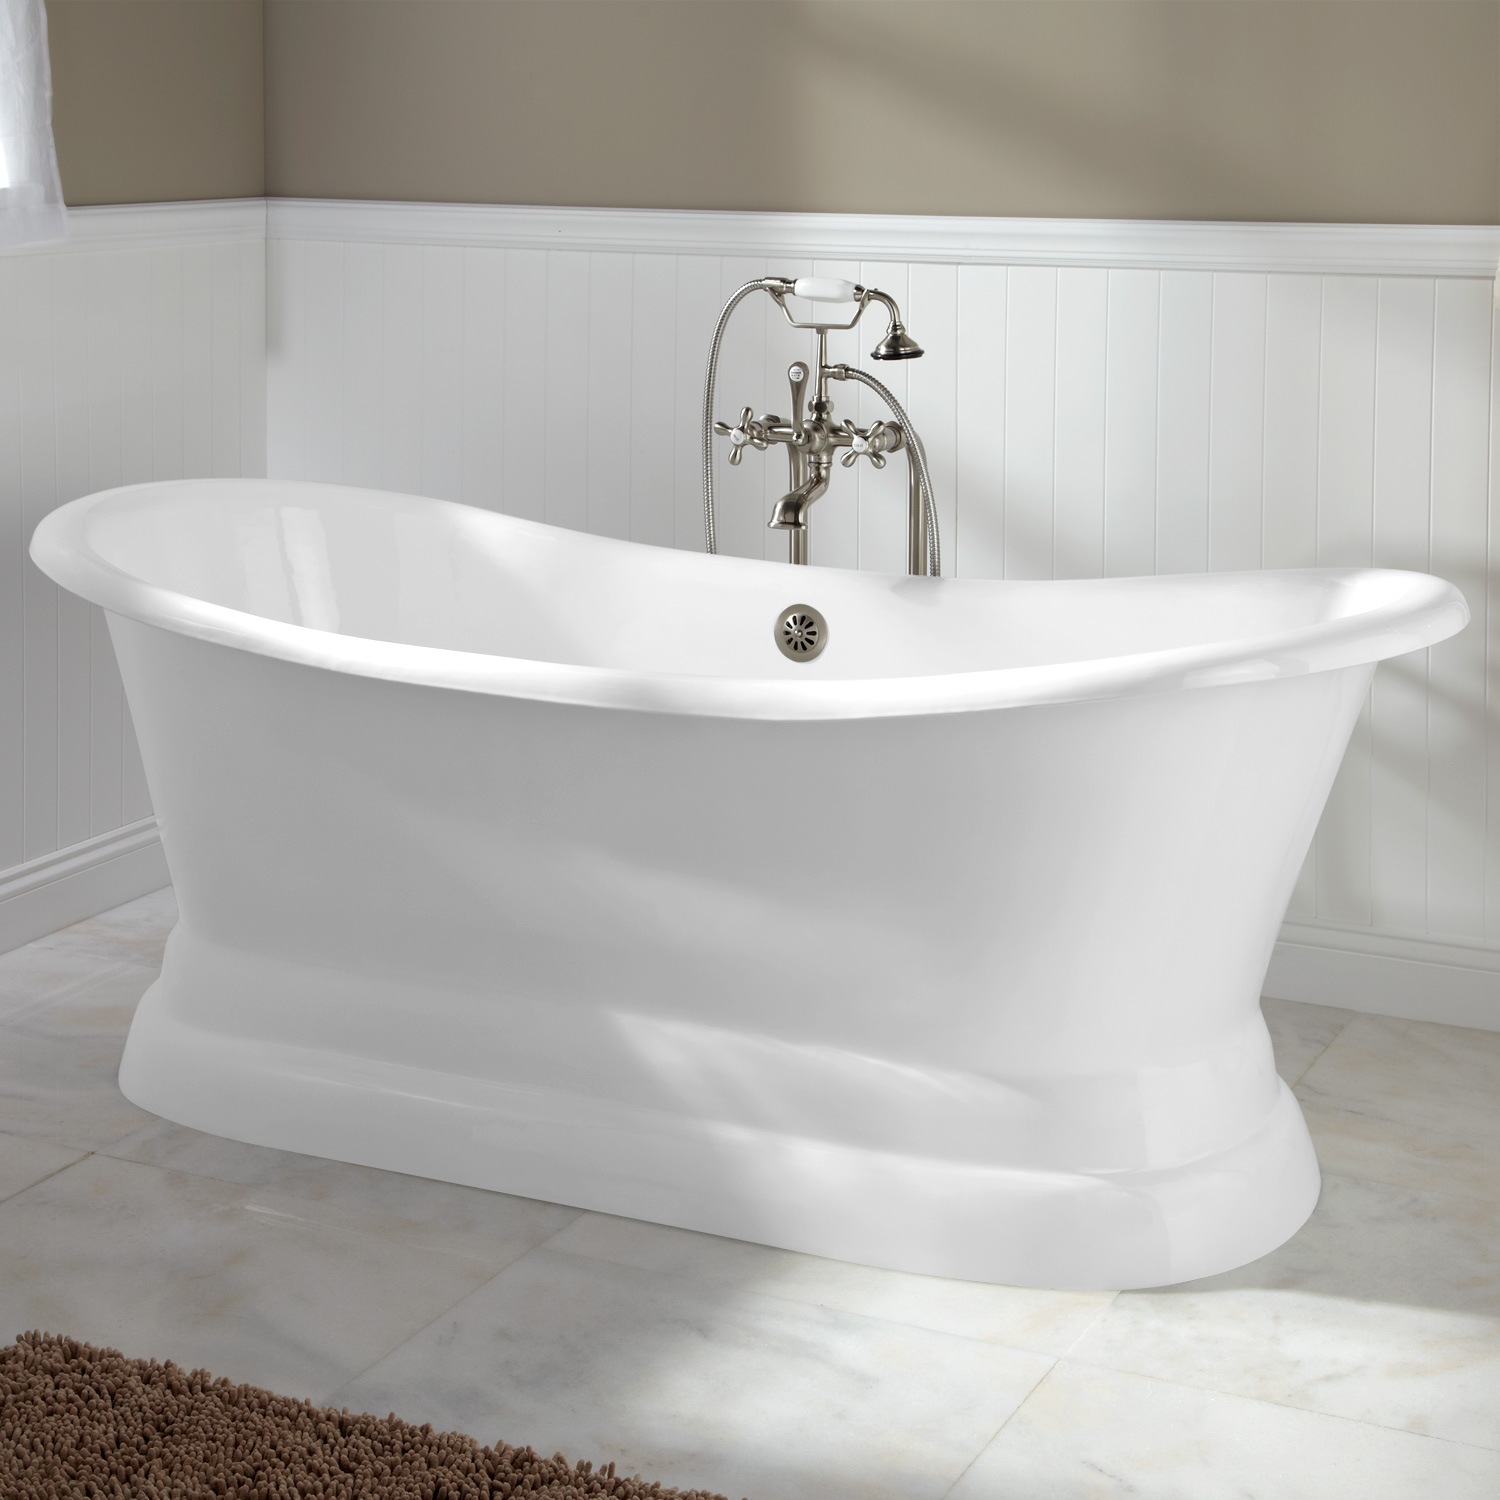 YS-2008D Cast Iron Double Slipper Tub with Monarch Imperial ...